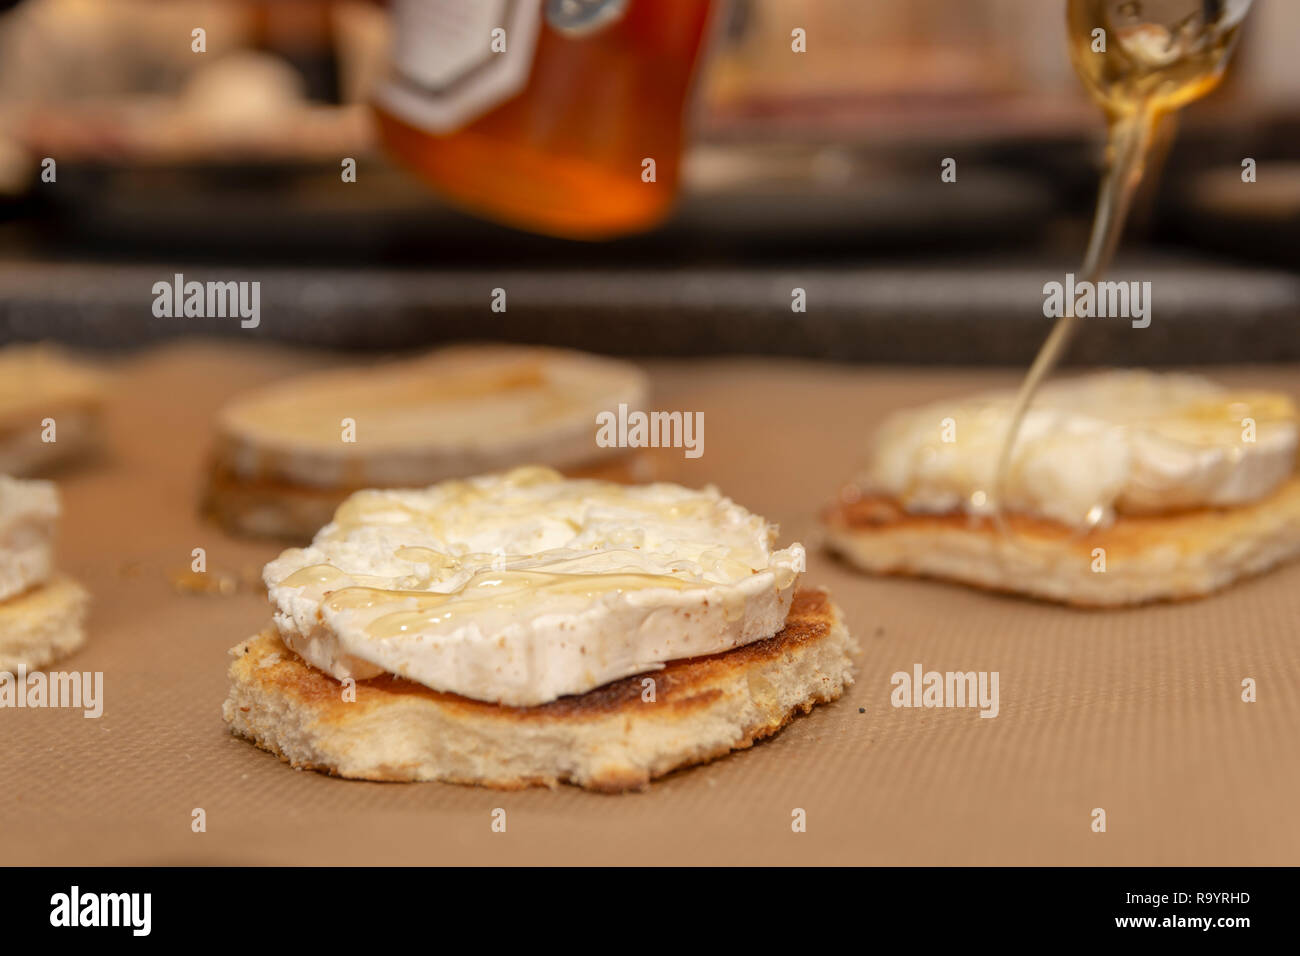 Pouring of honey over roasted bred with a slice of chevre cheese. - Stock Image